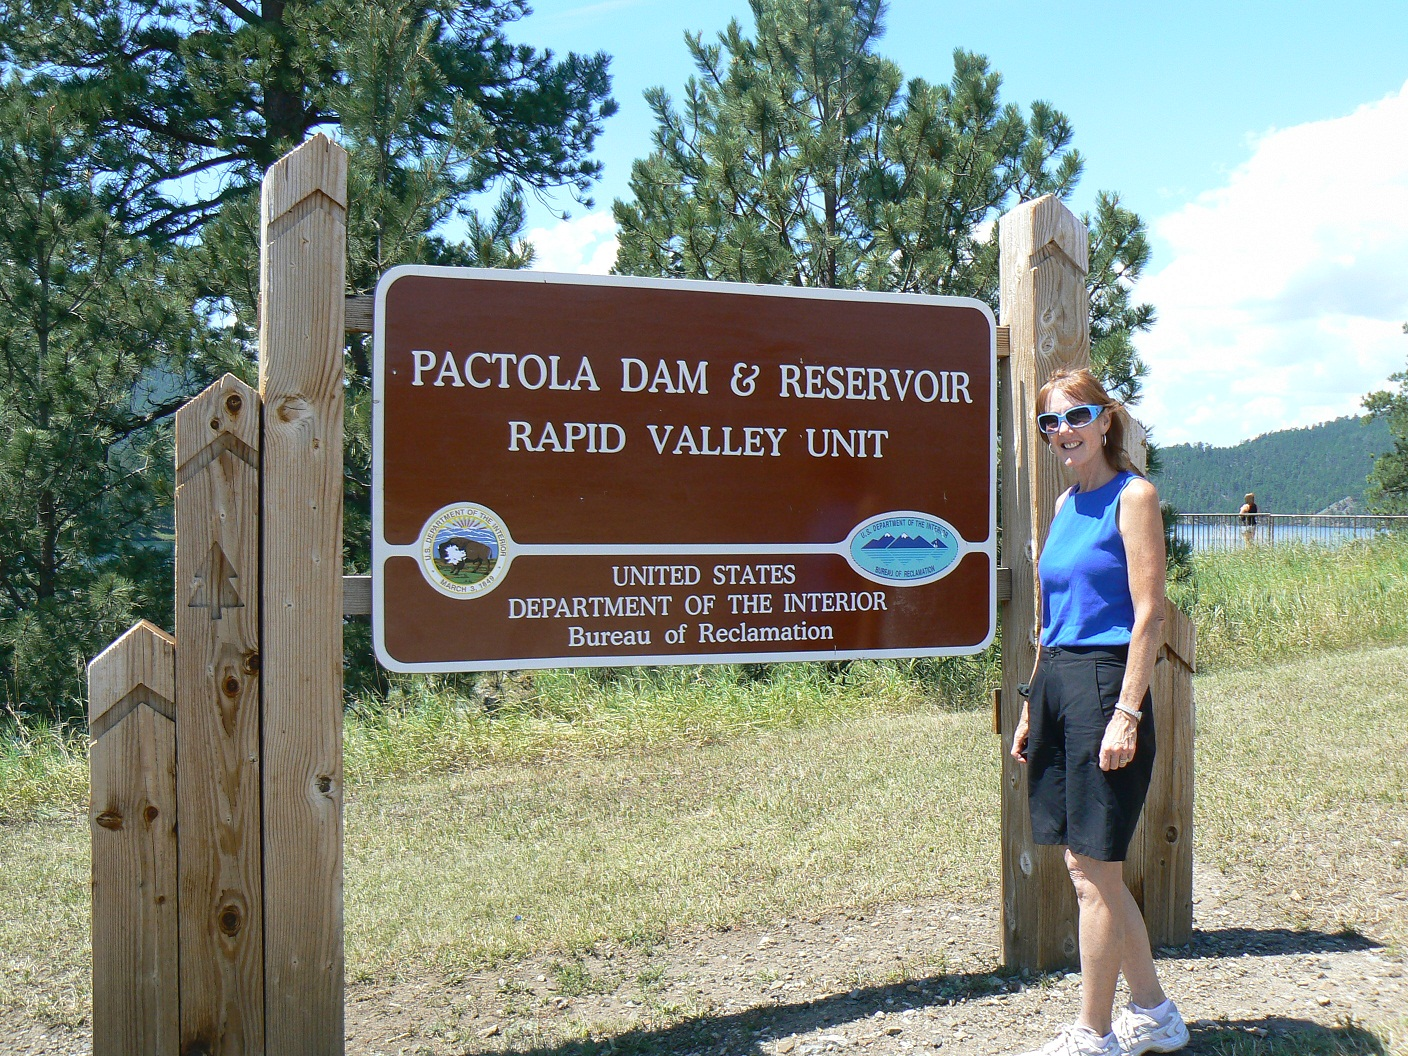 Click image for larger version  Name:Pat and Pactola Reservoir Hill City.jpg Views:47 Size:863.1 KB ID:136866